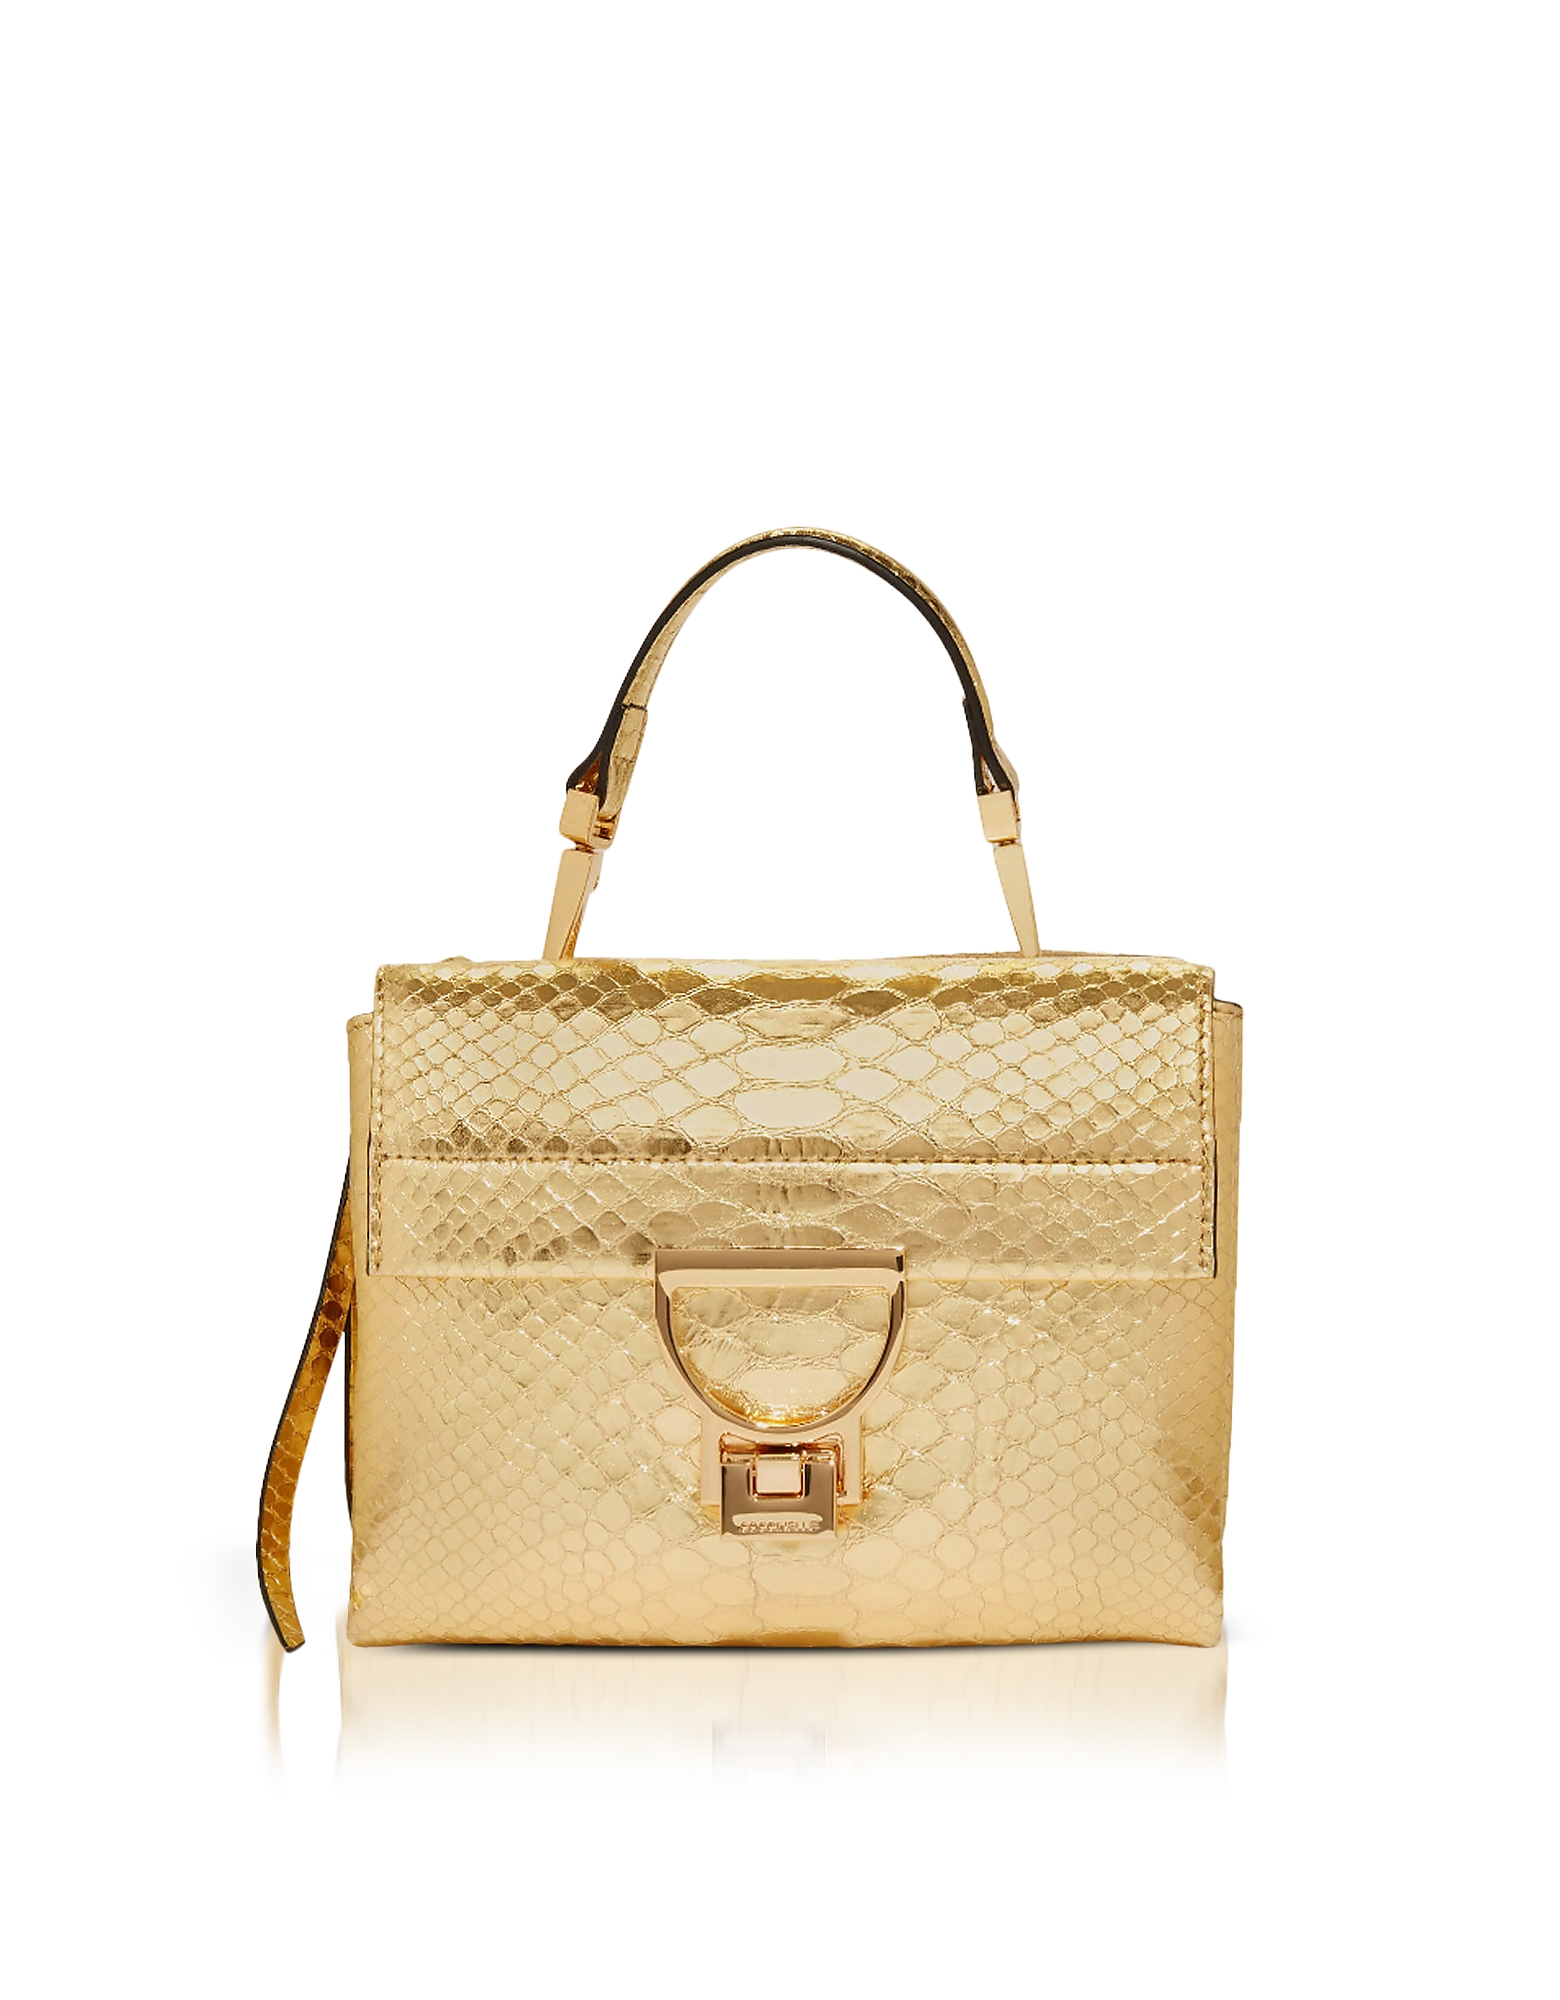 Arlettis Metallic Python Leather Mini Bag w/Shoulder Strap. Arlettis Leather Mini Bag crafted in metallic python leather, has a fun 70s vibe that will lend a refined vibrancy to evening and special occasions. Featuring flap and lever fastening, detachable top handle, detachable shoulder strap, front compartment with flap closure, external back zip pocket with external side snap close detail, signature detail on back and gold tone hardware. Signature dust bag included.